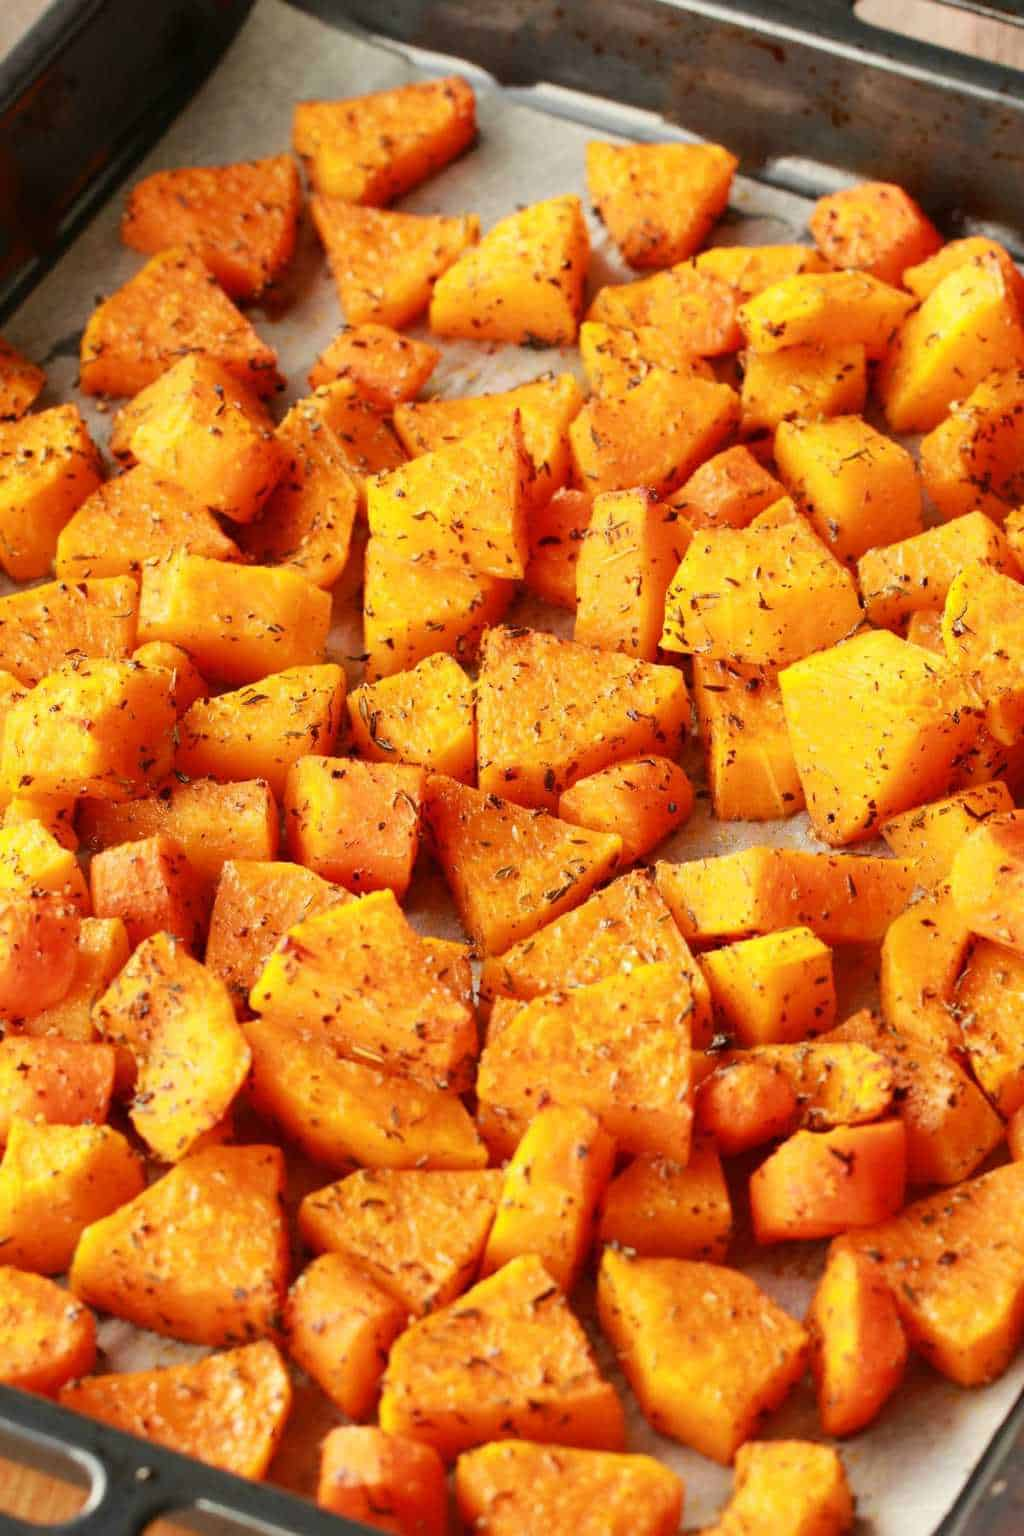 Roasted Butternut and Carrots on an oven tray